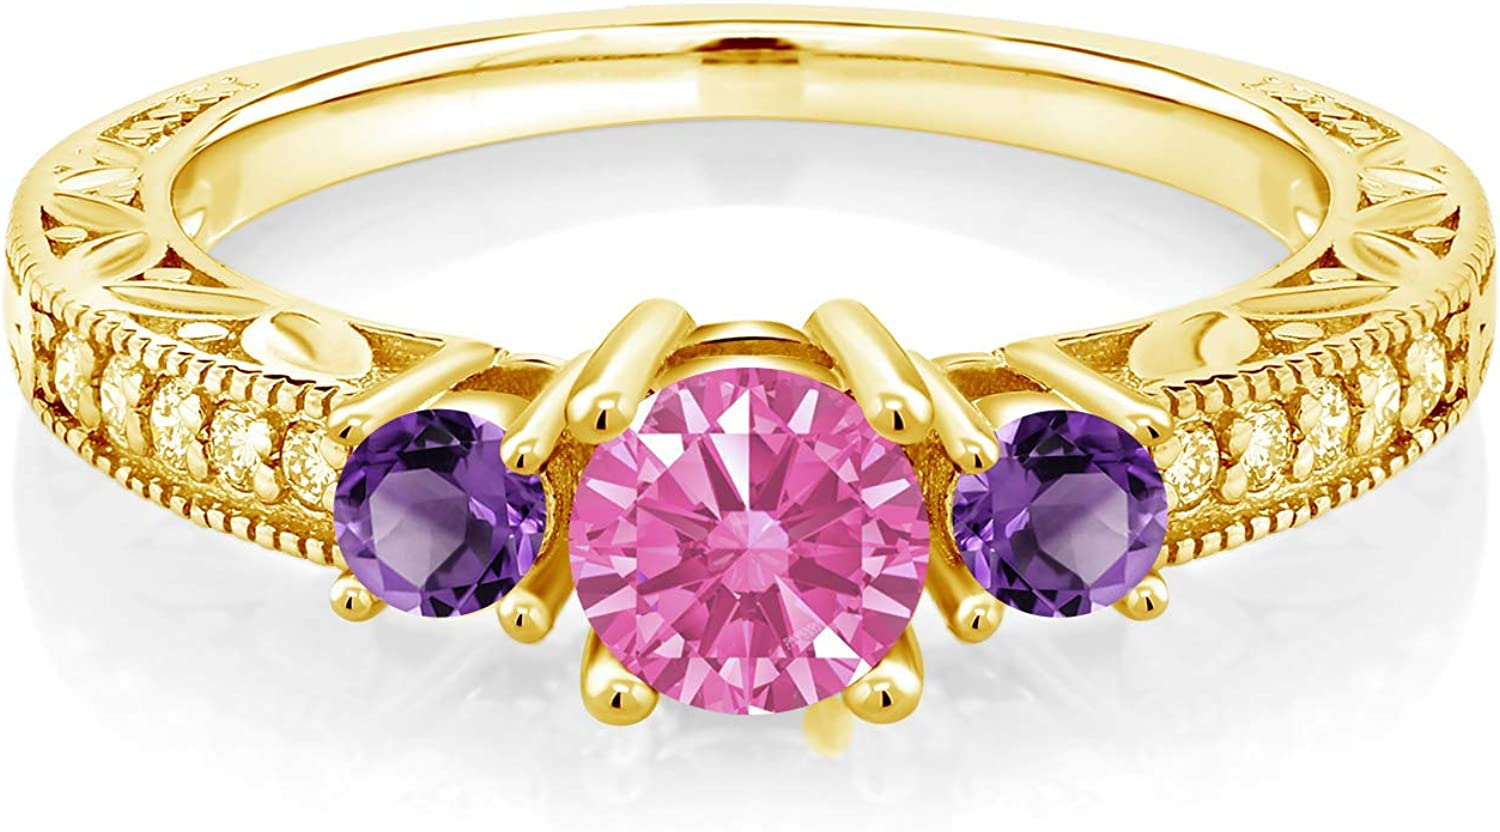 Gem Stone King 18K Yellow Gold Silver Plated Financial sales sale Ring Purple Finally popular brand 3-Stone